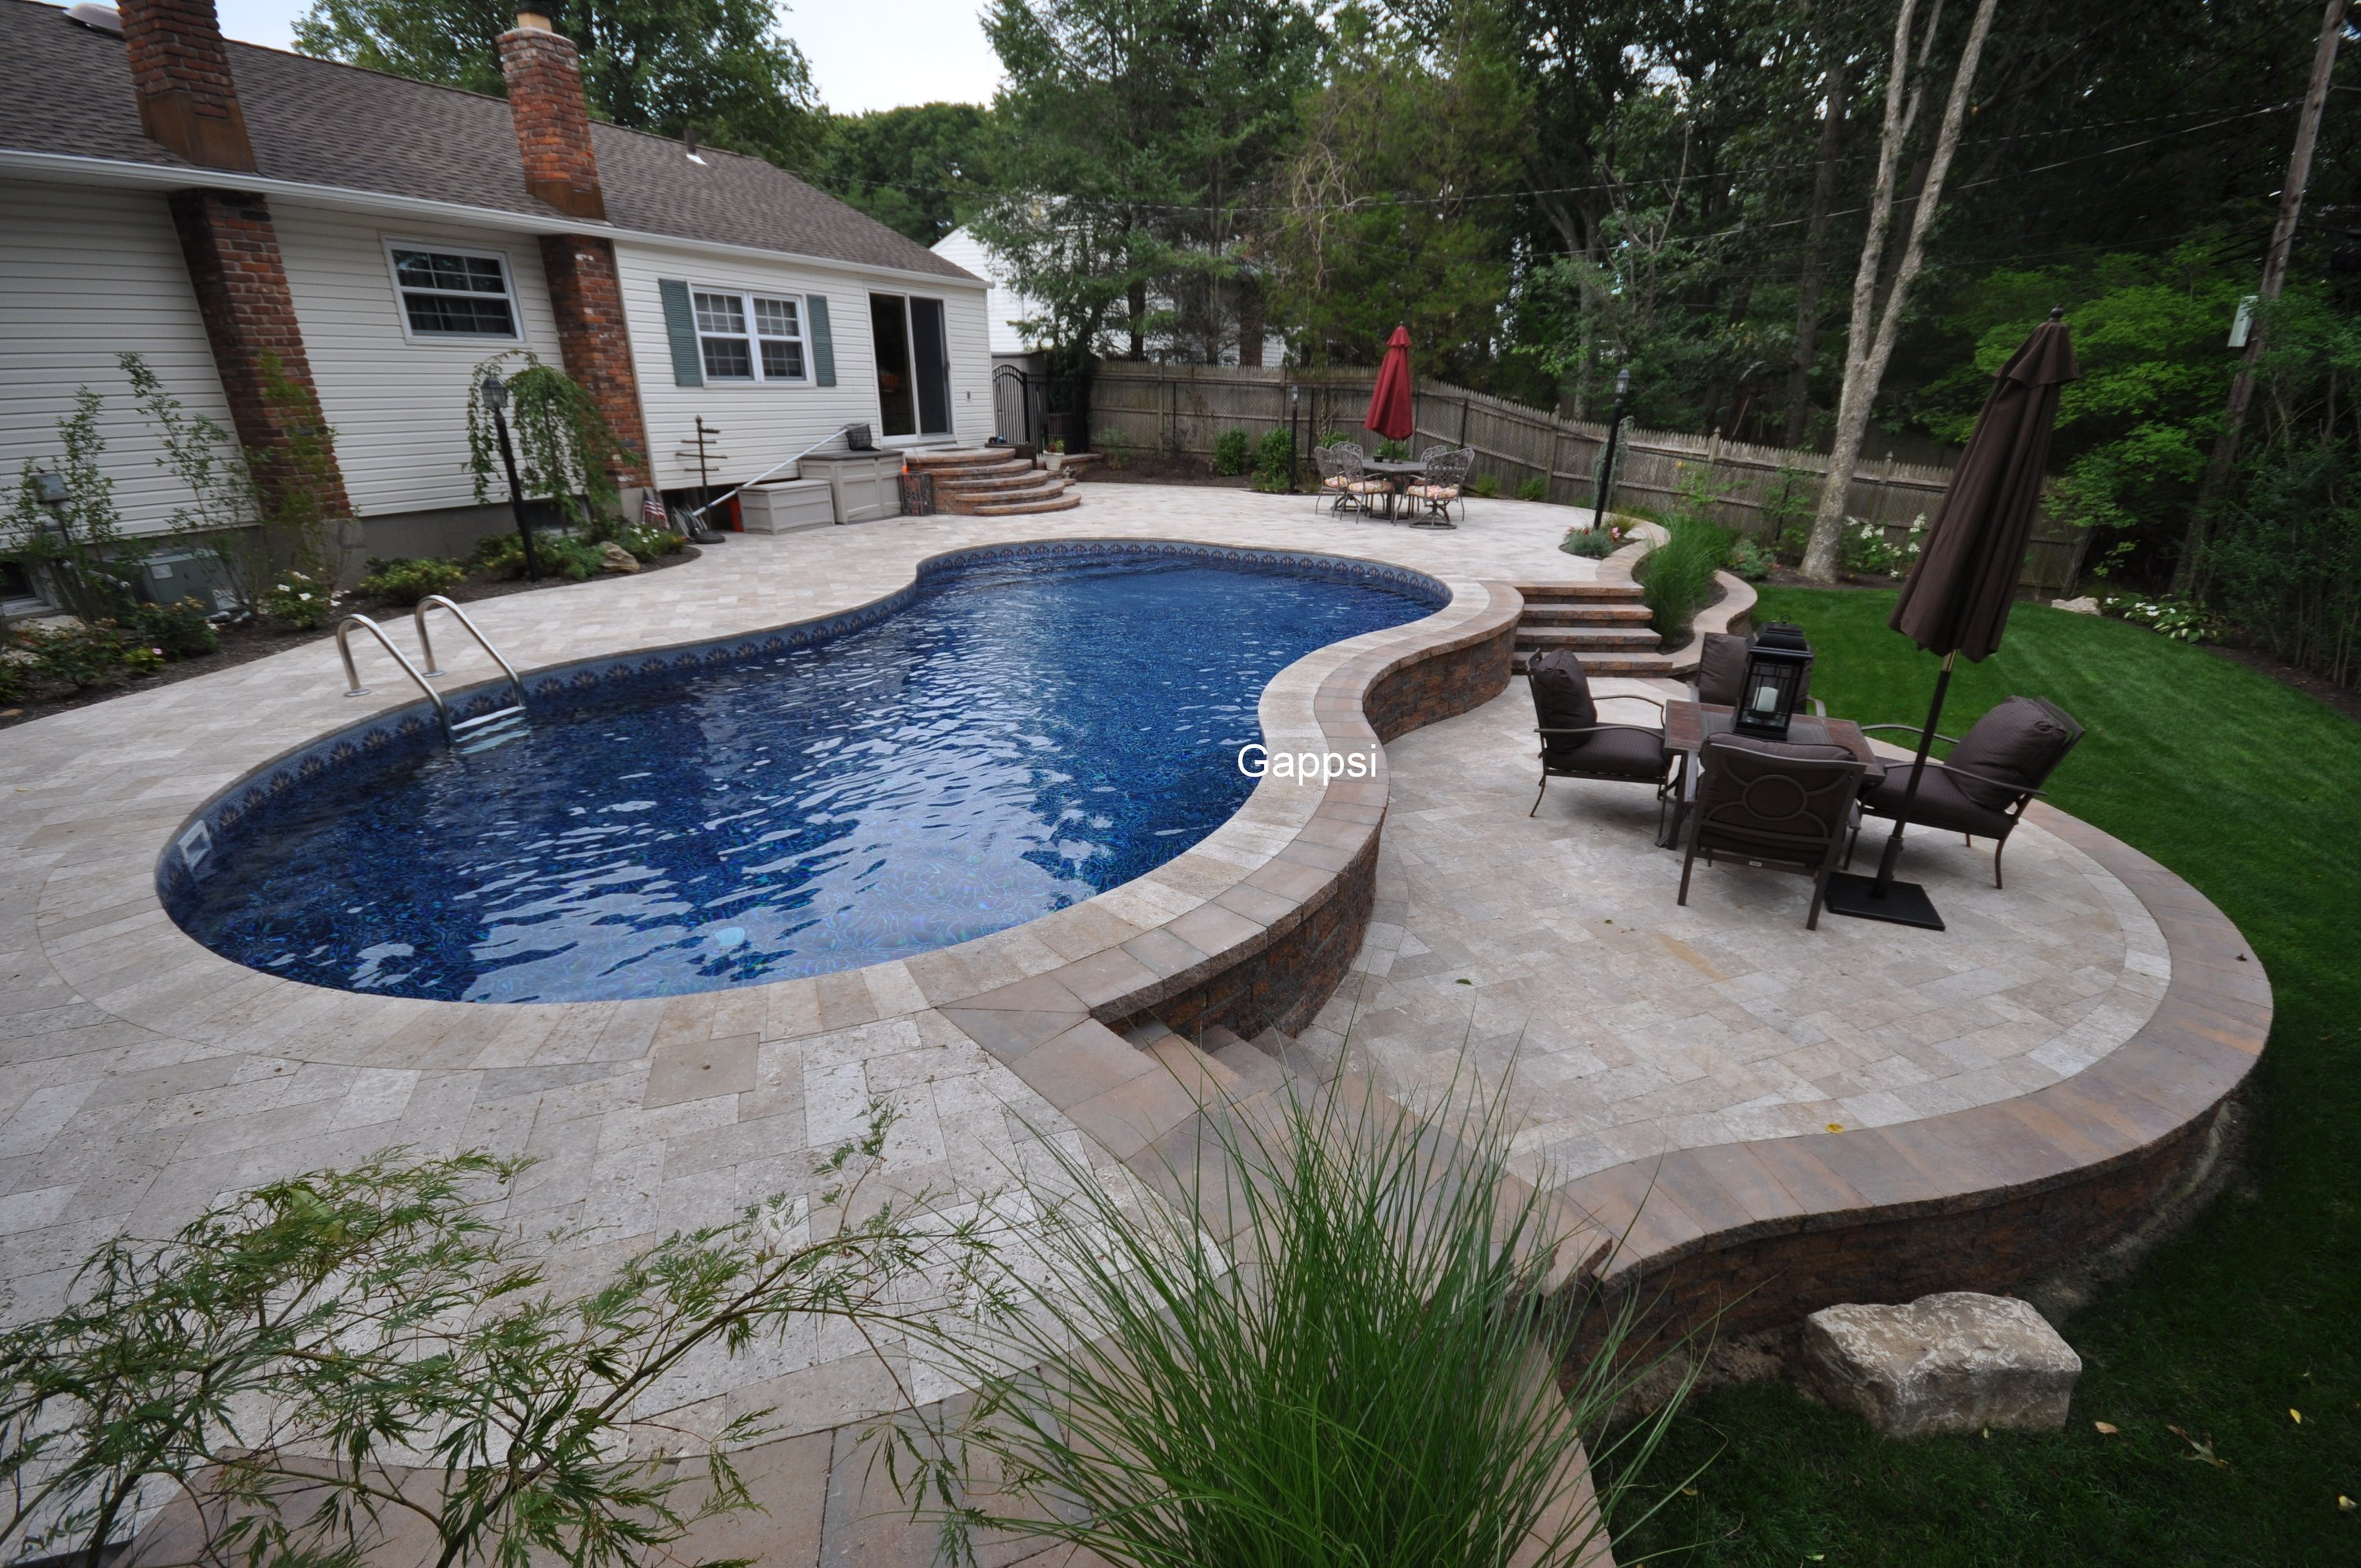 Swimming pool built in hill in smithtown ny by Gappsi